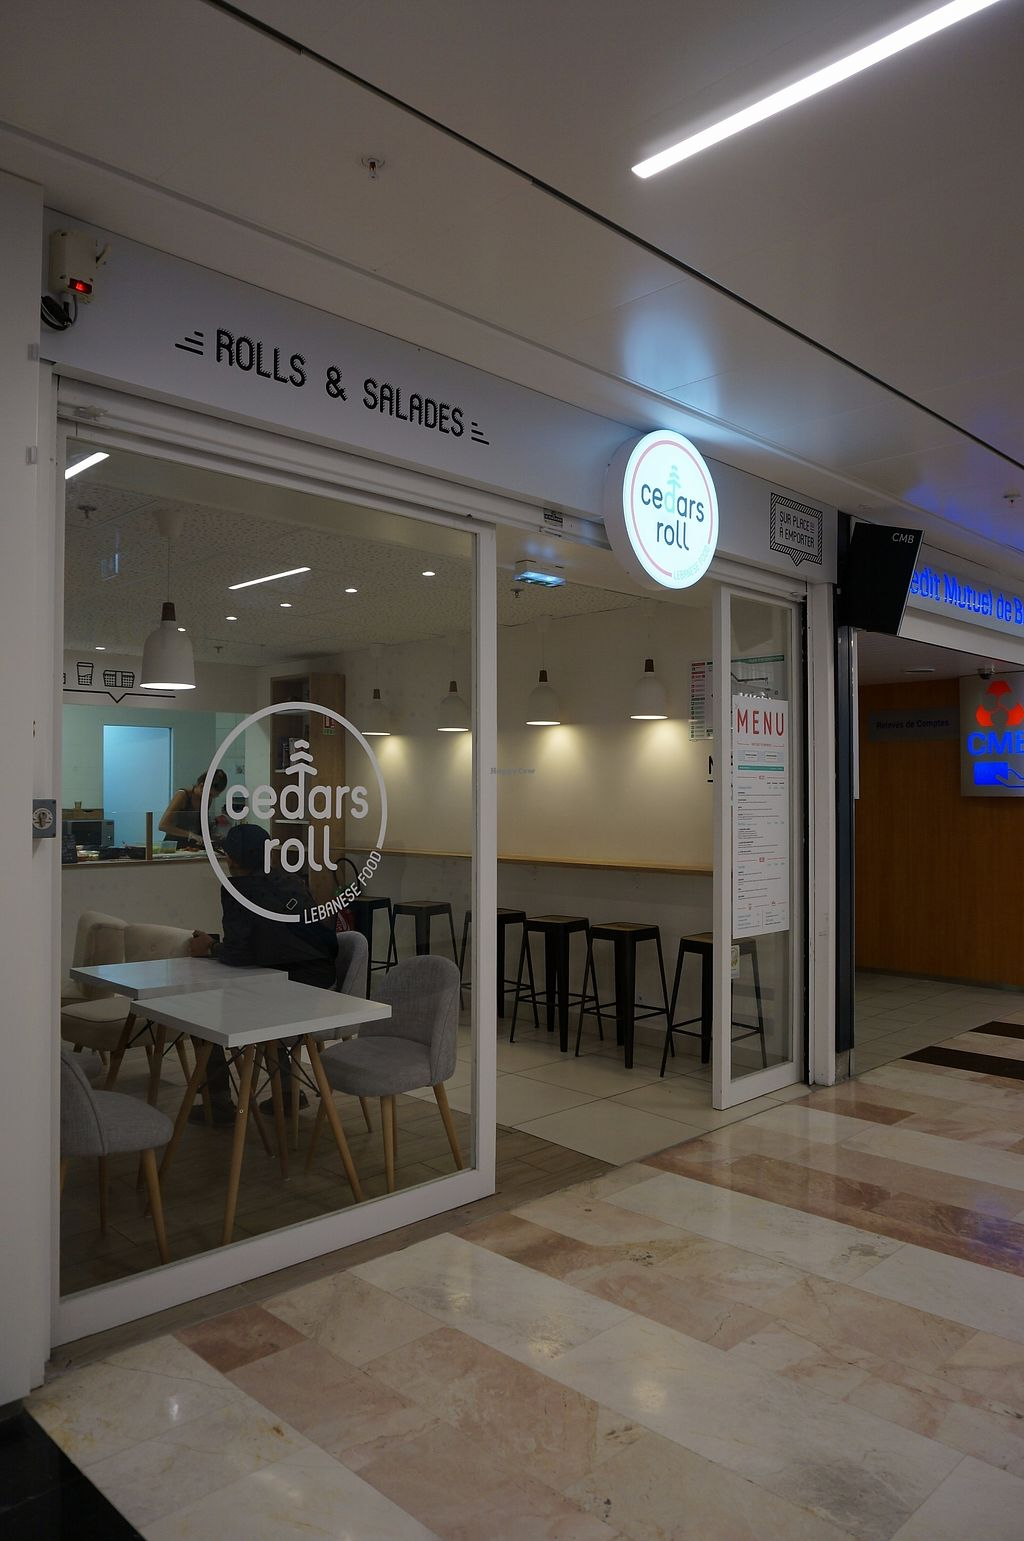 """Photo of Cedars Roll  by <a href=""""/members/profile/Ricardo"""">Ricardo</a> <br/>Store Front <br/> July 29, 2017  - <a href='/contact/abuse/image/97425/286422'>Report</a>"""